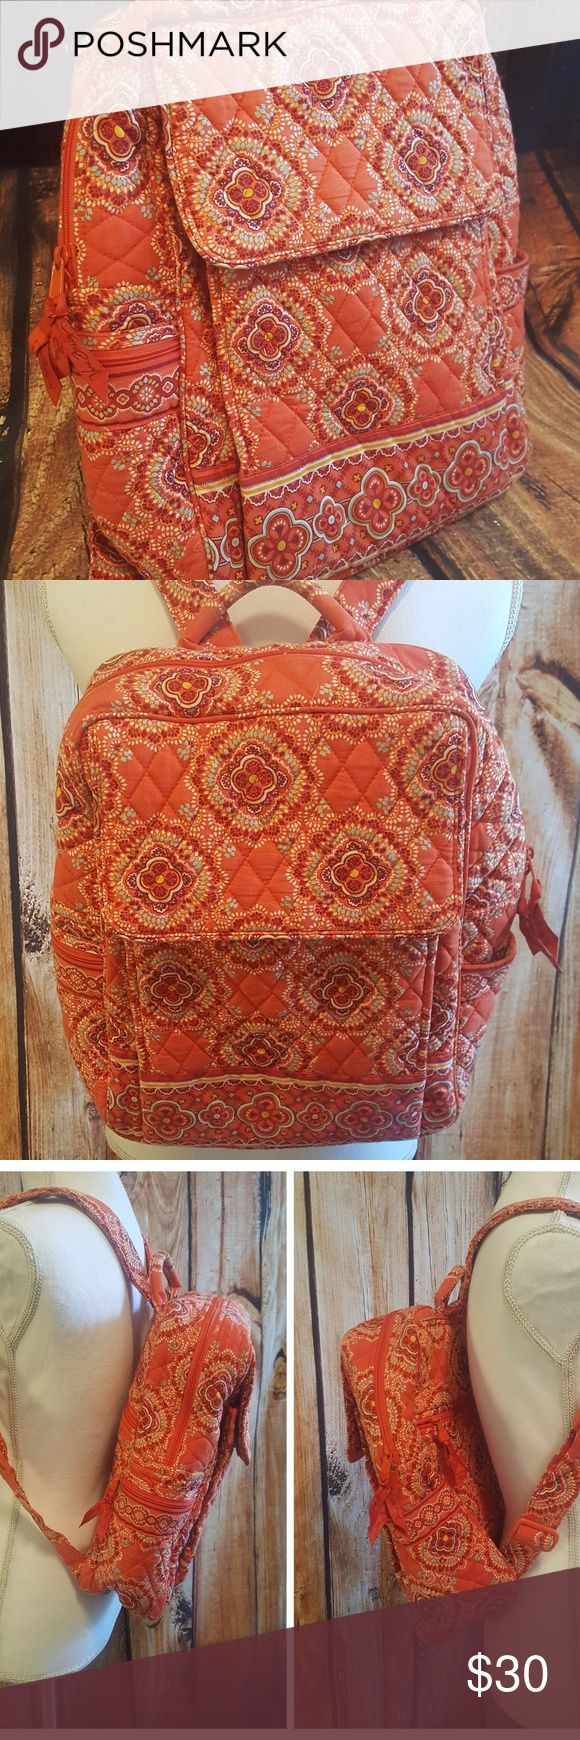 """Vera Bradley Backpack in Paprika 🤓📓🤓 Original Vera Bradley backpack in retired pattern """"Paprika"""".  Perfect lightweight backpack! Great for tablets & small laptops! Approximately 16 inches tall, 12 inches wide & 5 inches deep.  Several zipper compartments & plastic insert for student ID or license!  Completely machine washable!!! Used frequently & overall in great condition!!! Binding in bottom back, along seam is starting to show from wear, less than 1/2 inch of binding showing & not…"""